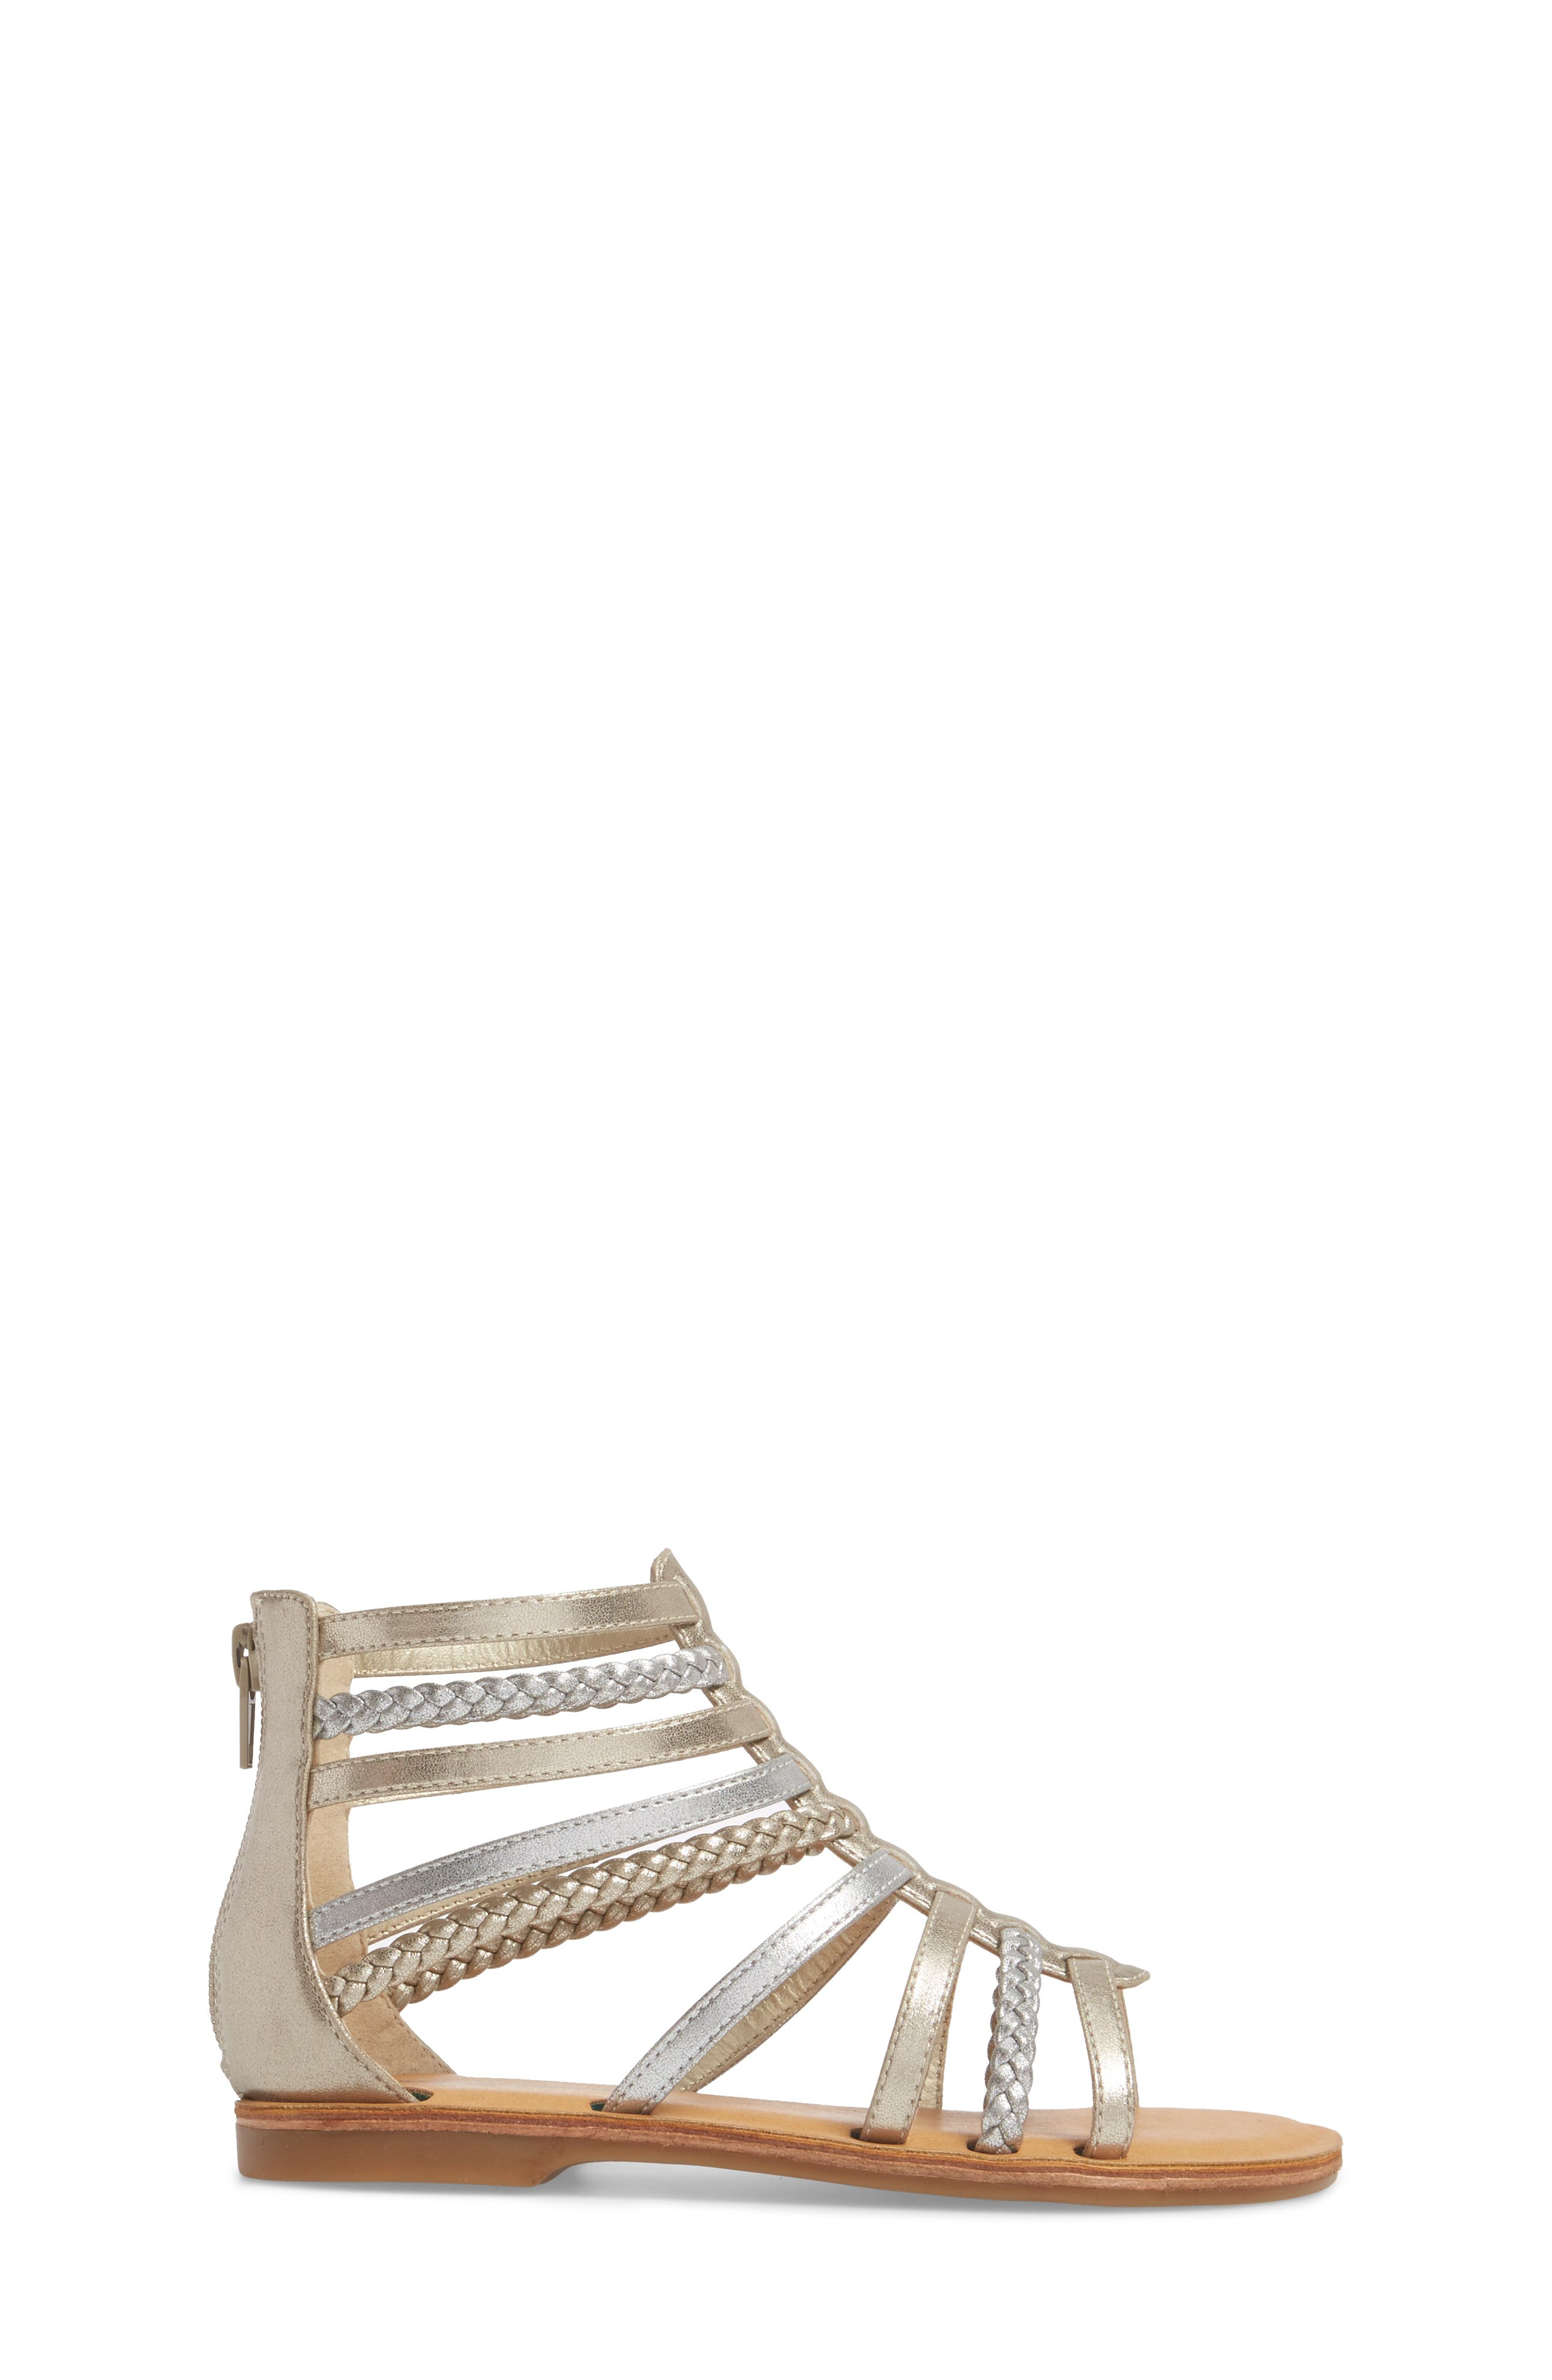 Sonja Braided Gladiator Sandal,                             Alternate thumbnail 3, color,                             Silver/ Gold Faux Leather